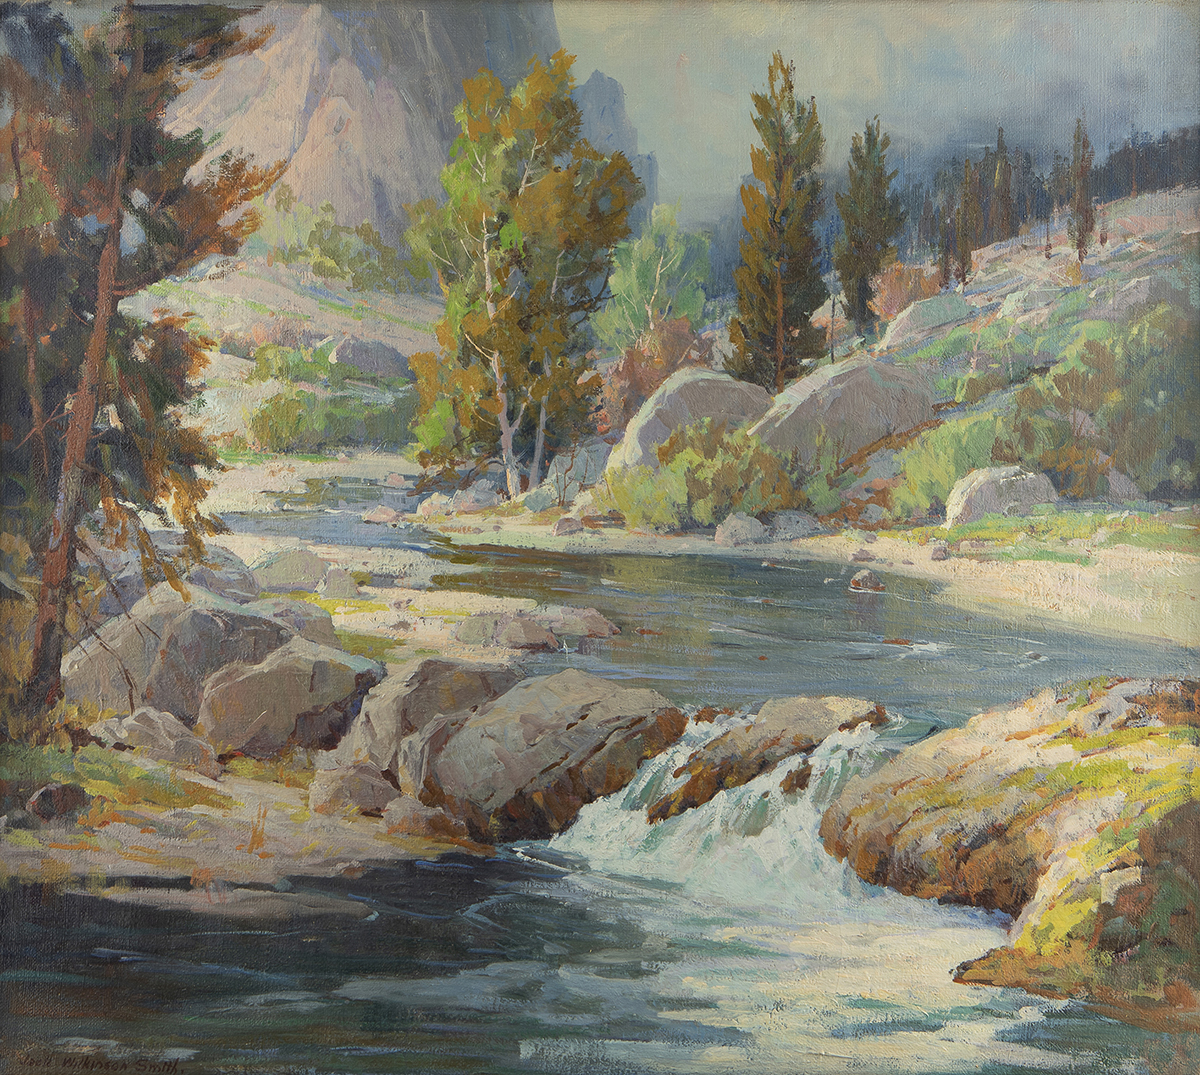 Jack Wilkinson Smith, (1873-1949 Alhambra, CA)